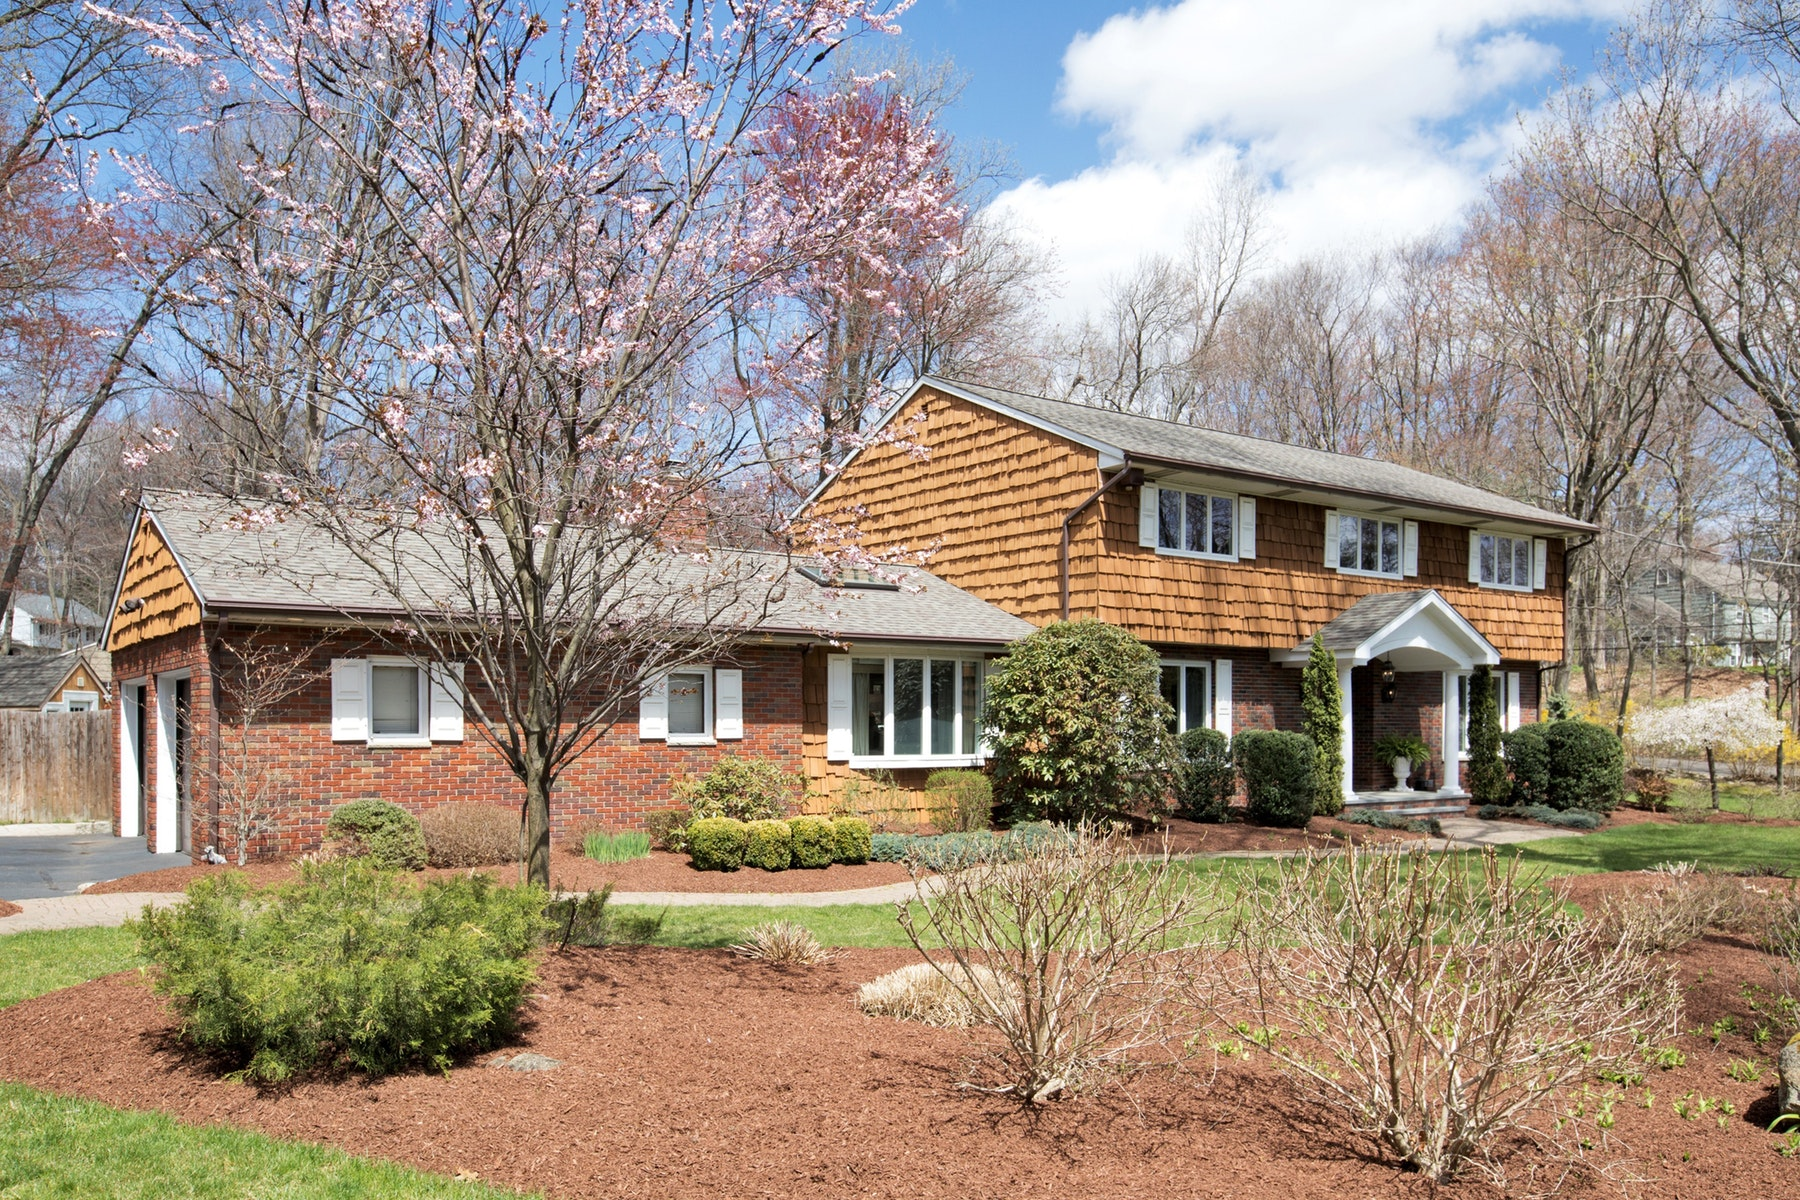 Single Family Home for Sale at Exquisite Center Hall Colonial Home. 81 Upper Saddle River Rd, Montvale, New Jersey 07645 United States